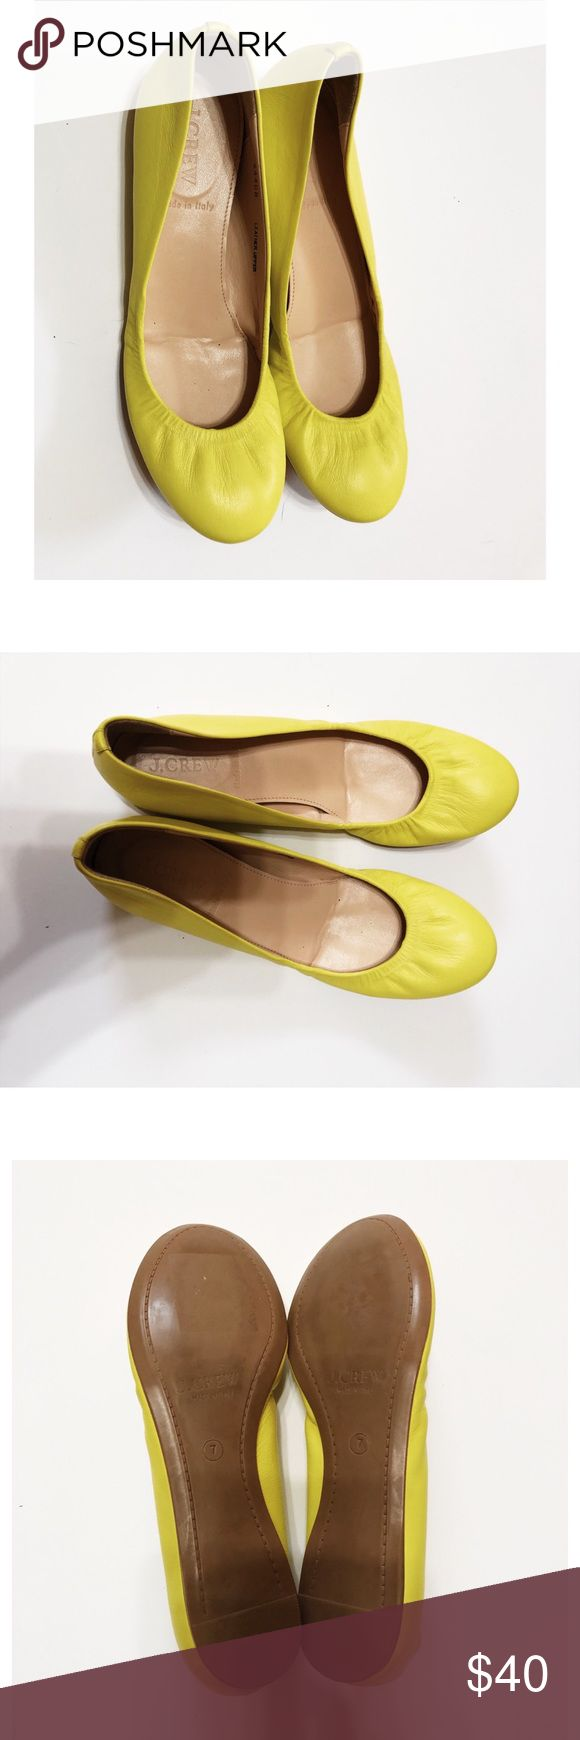 J. Crew | yellow ballet flats J. Crew yellow ballet flats! Spice up any outfit with these adorable flats! Made in Italy. Lightly used condition. Pictures show any signs of wear.  Bundle up! Offers welcome :) J. Crew Shoes Flats & Loafers